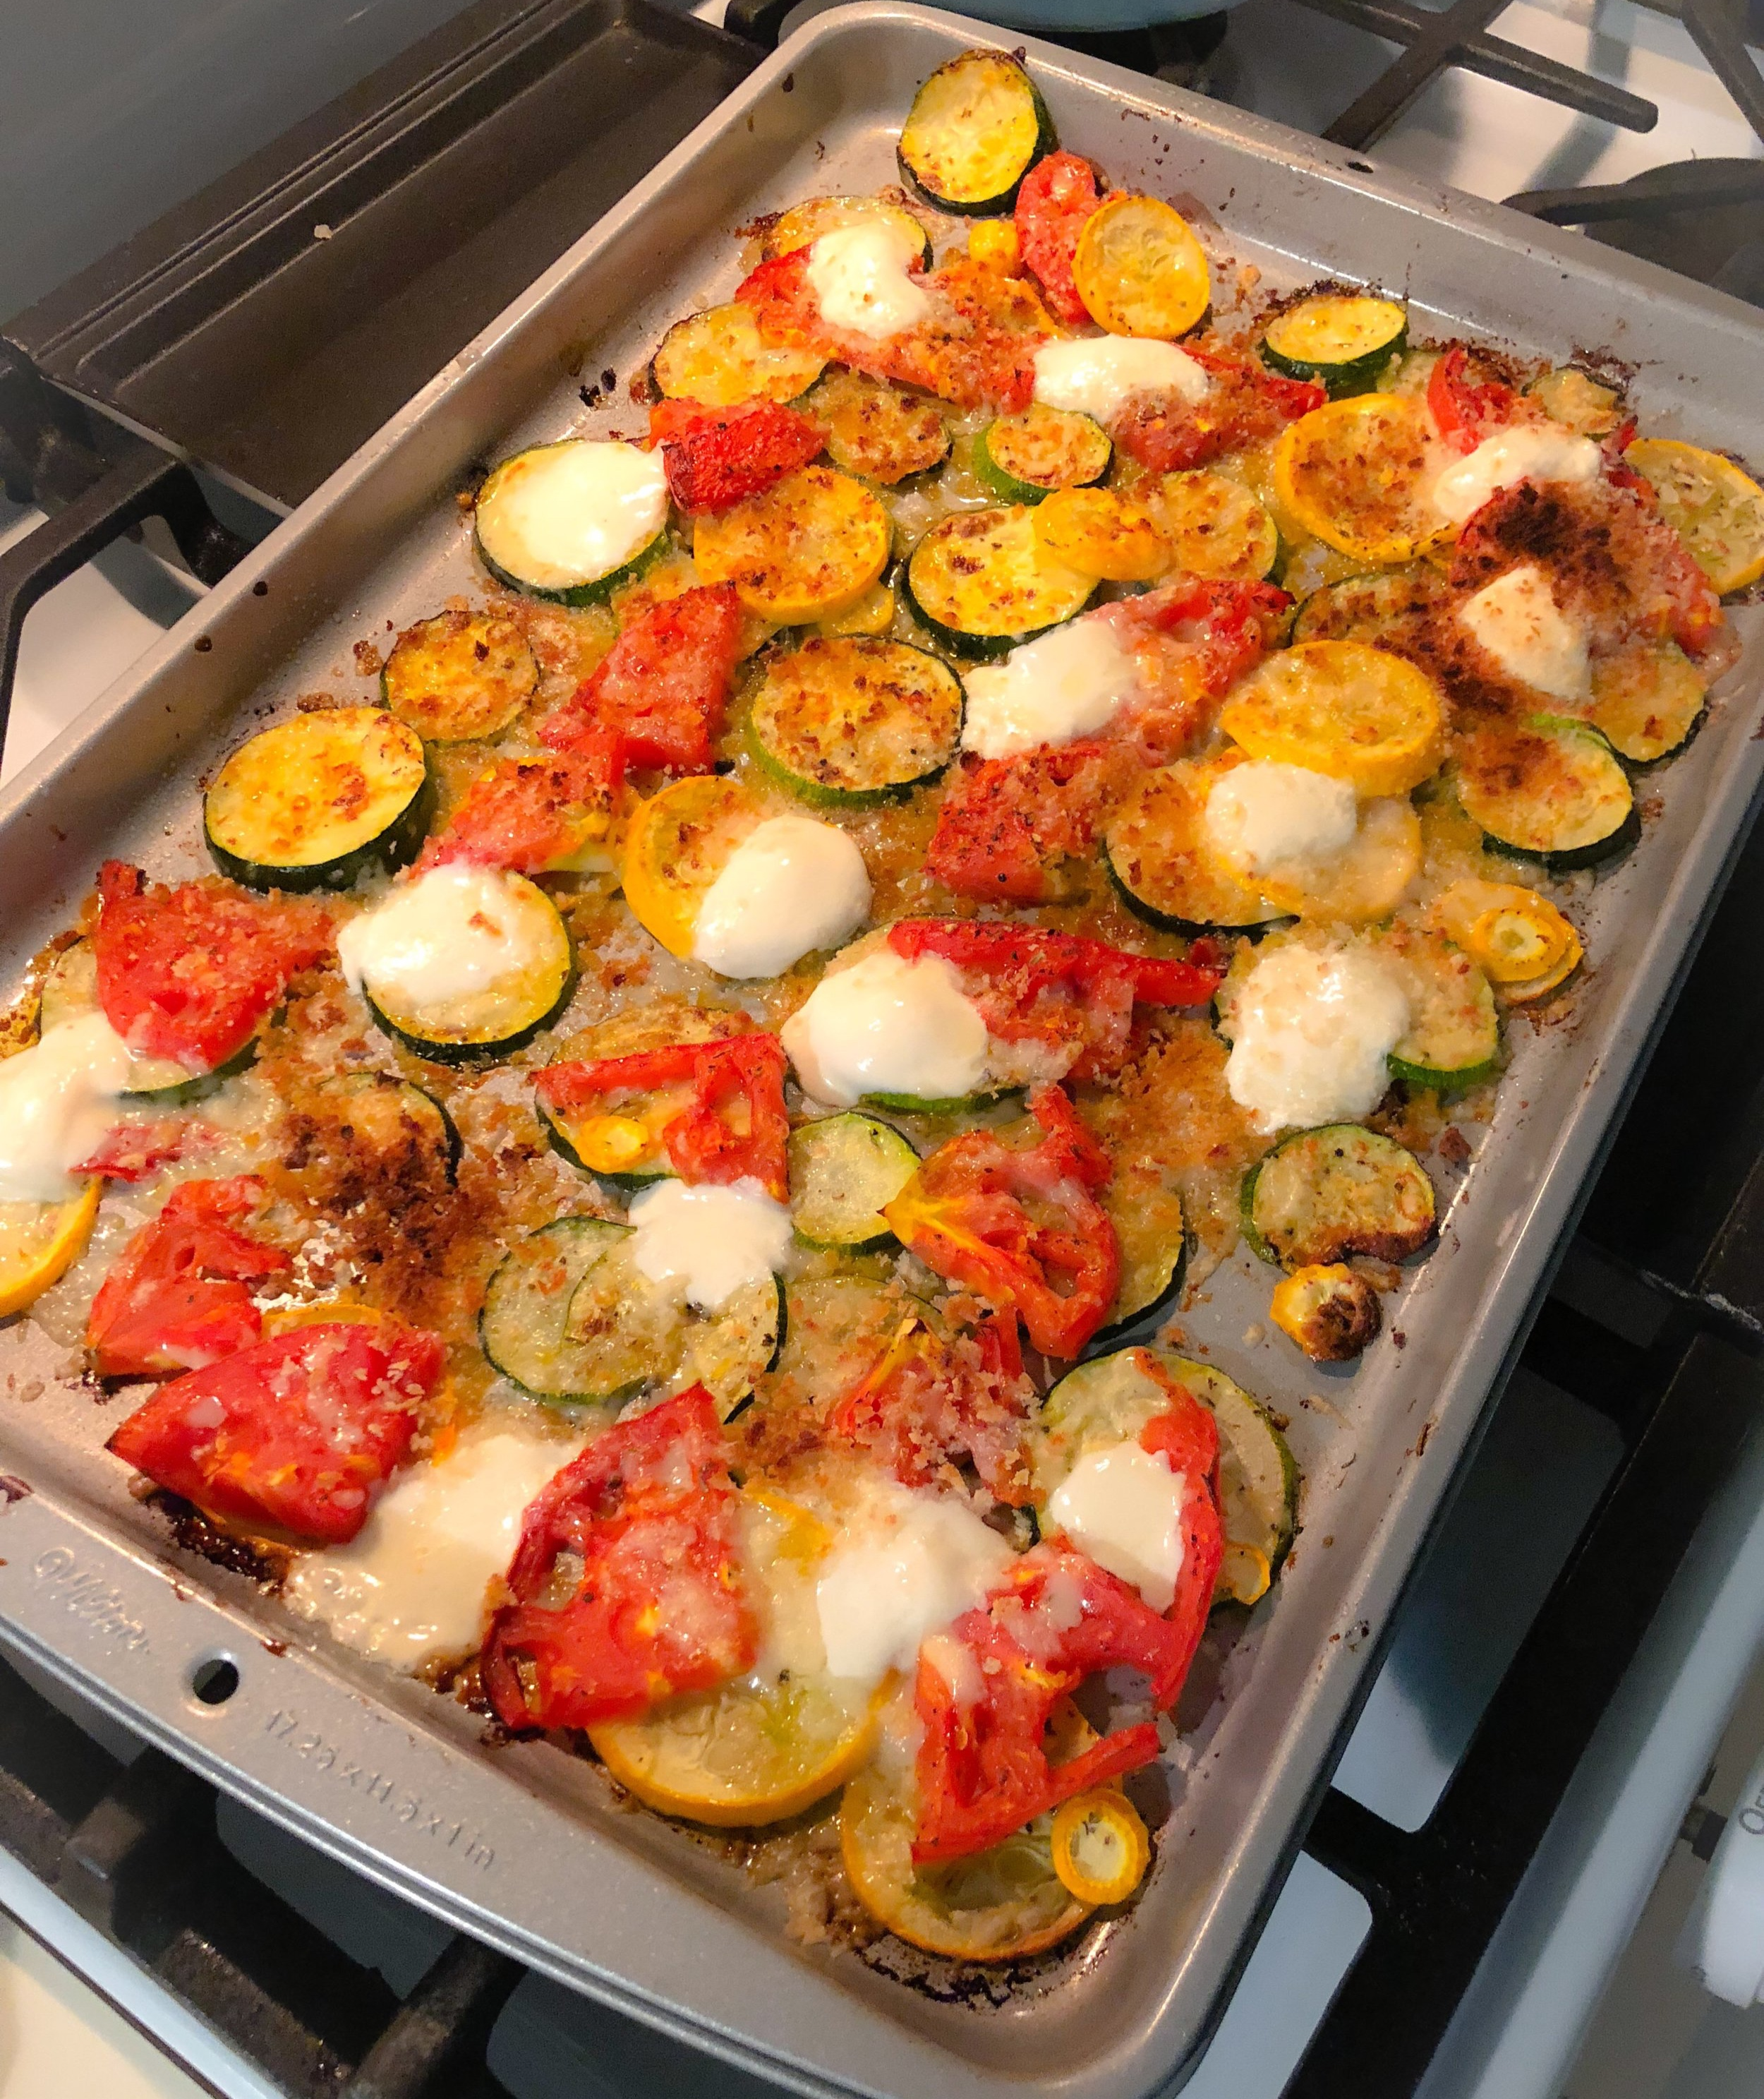 Pan roasted summer squash, zucchini, and tomatoes with broiled mozzarella and parmesan -